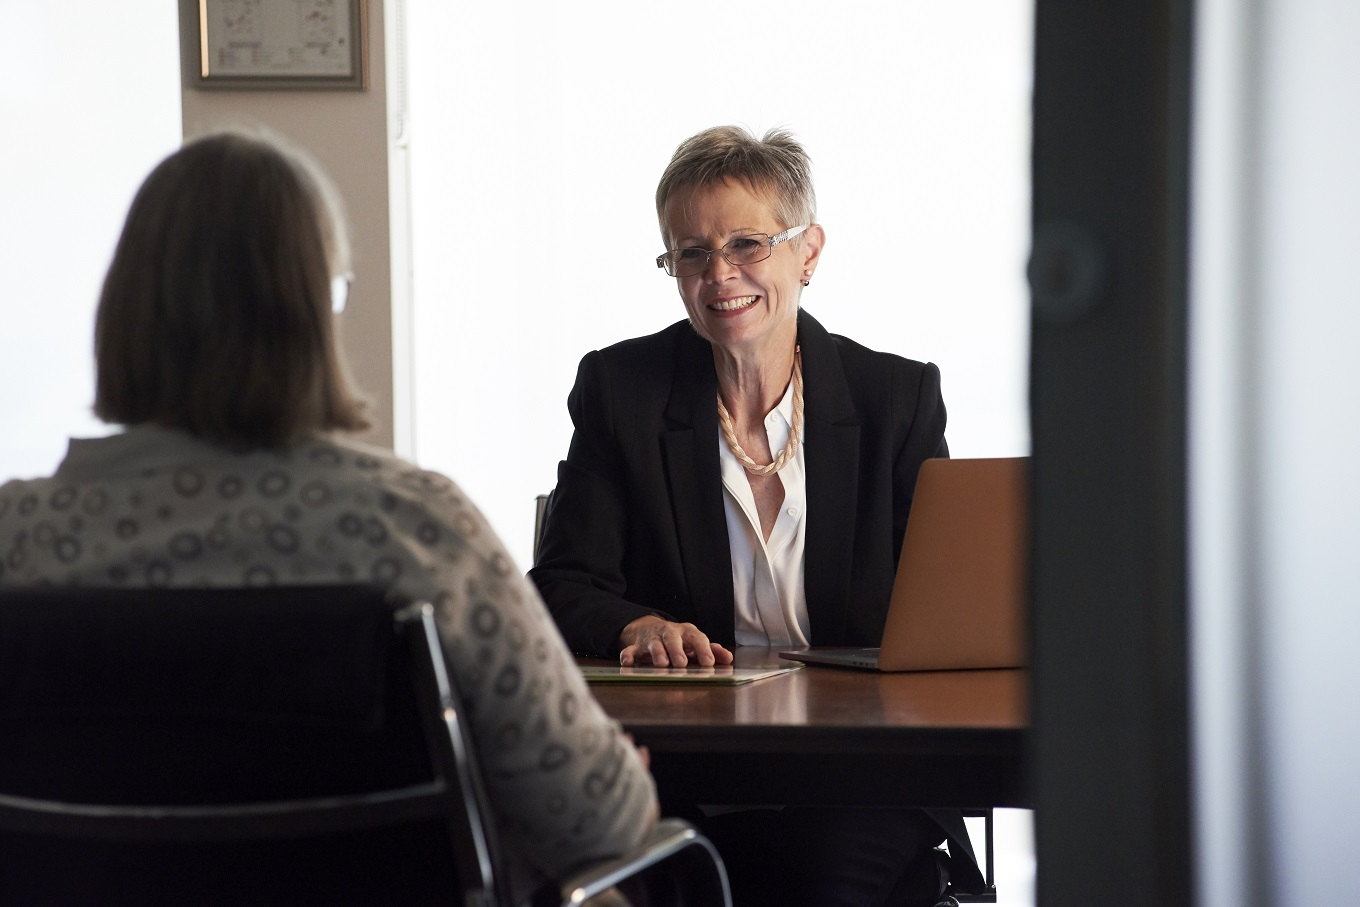 image of two women in a business meeting, smiling